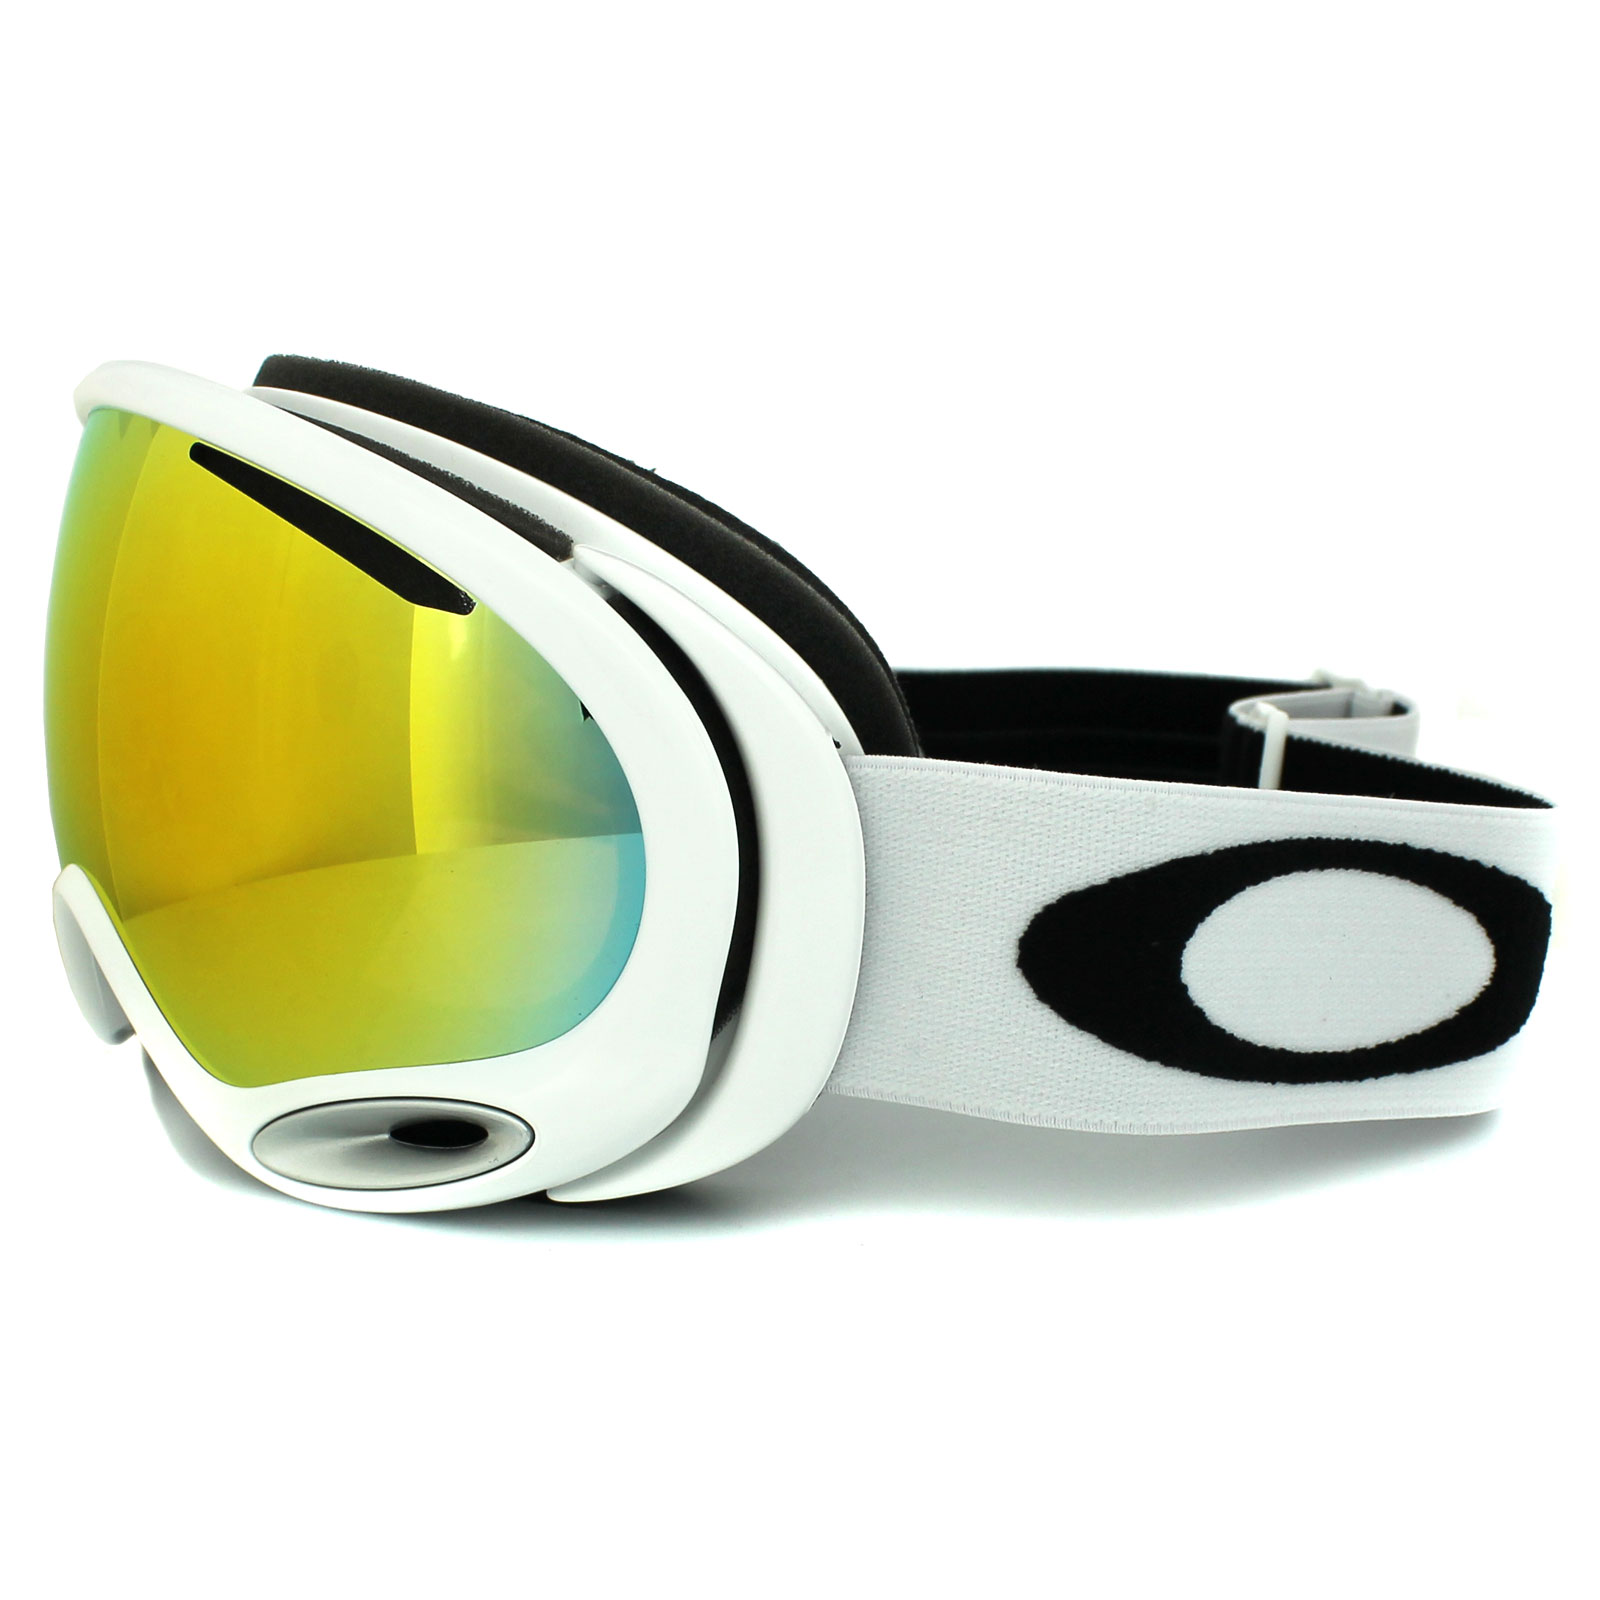 12bbe27b5d2 Cheap Oakley A Frame 2.0 Goggles - Discounted Sunglasses